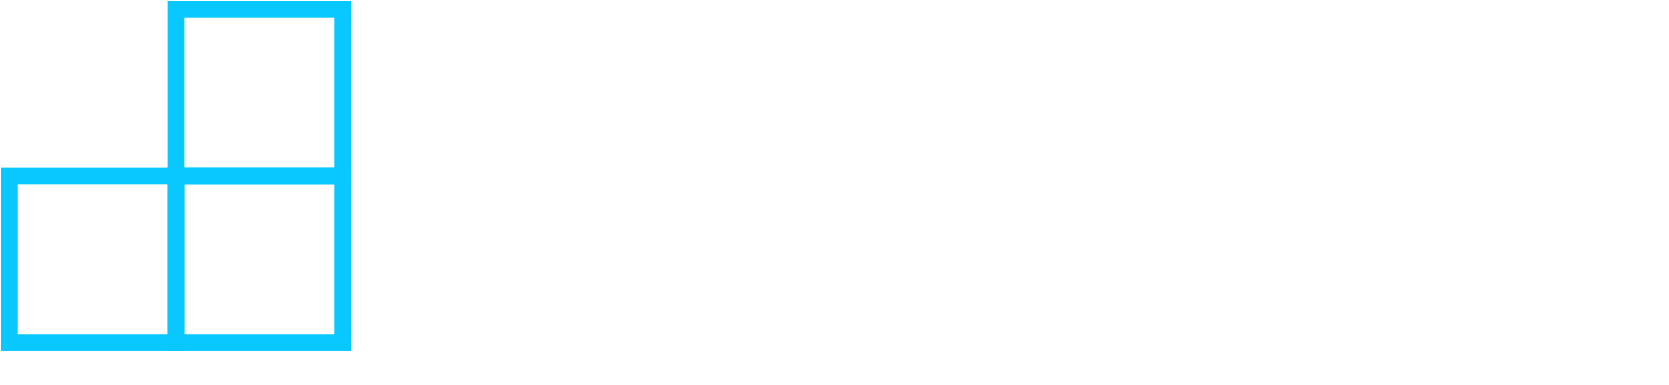 Nonprofit Quarterly is a member of the Institute for Nonprofit News